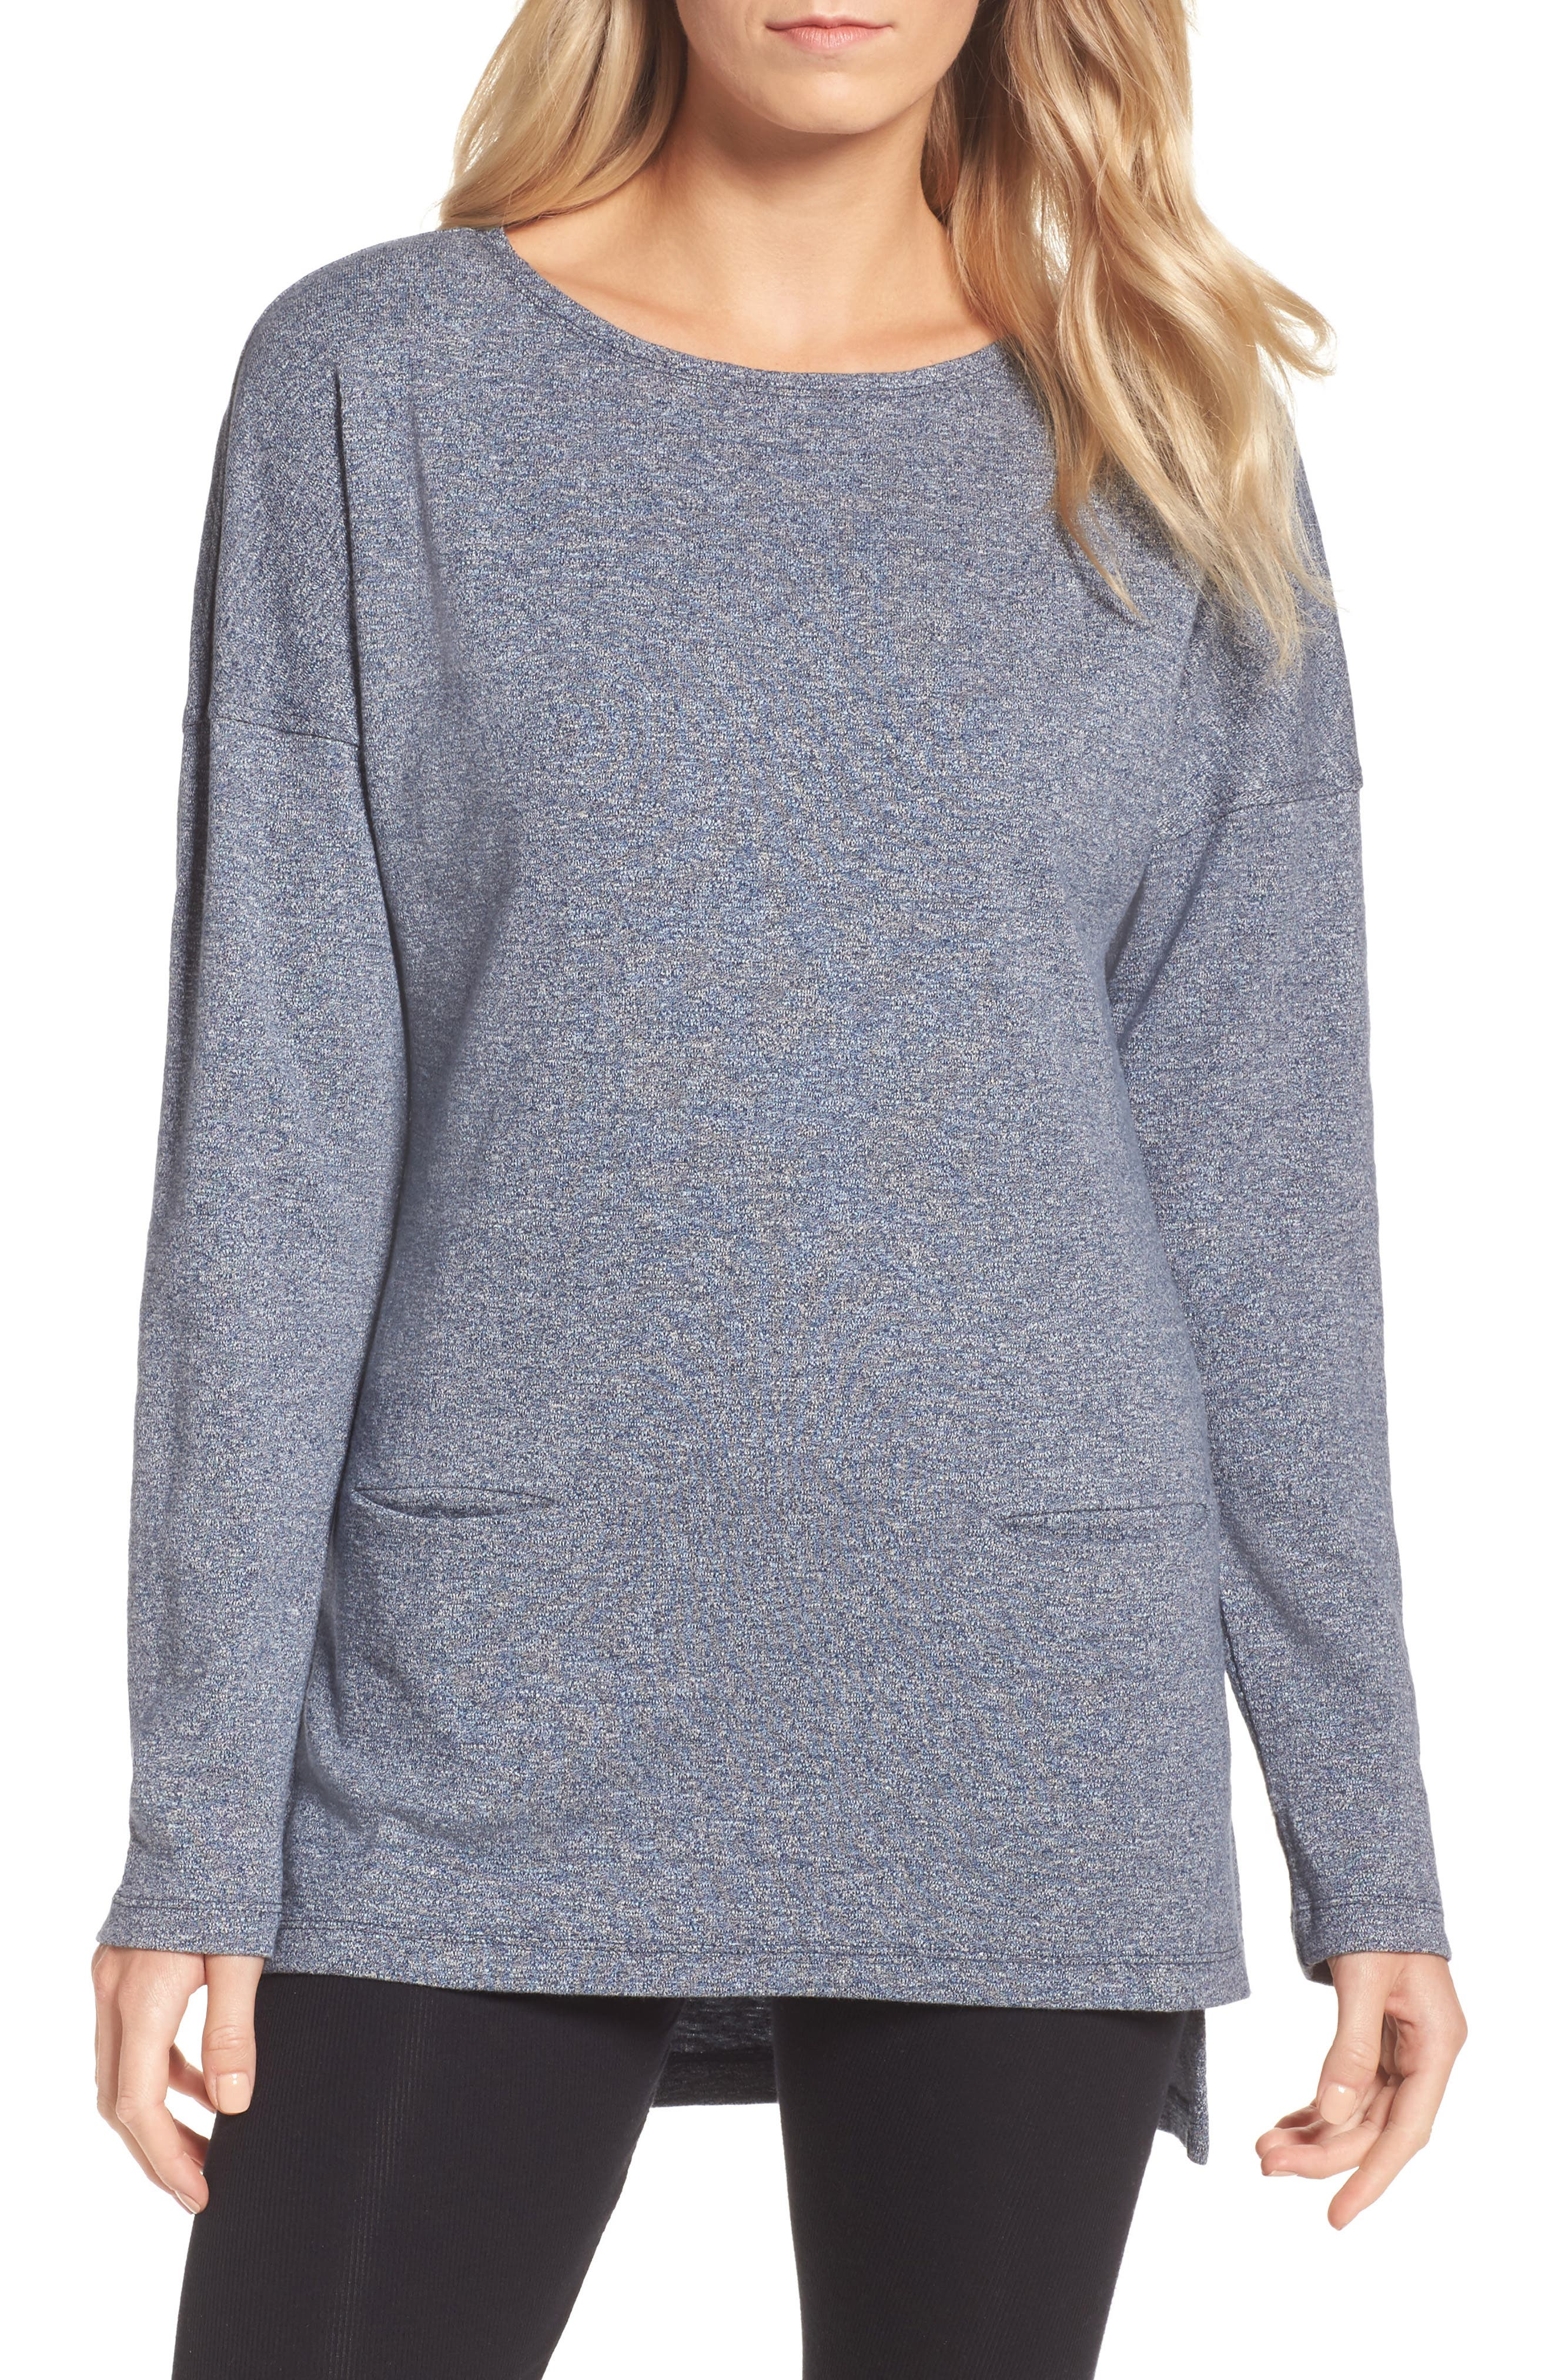 Alternate Image 1 Selected - UGG® Luella High/Low Cotton Pullover